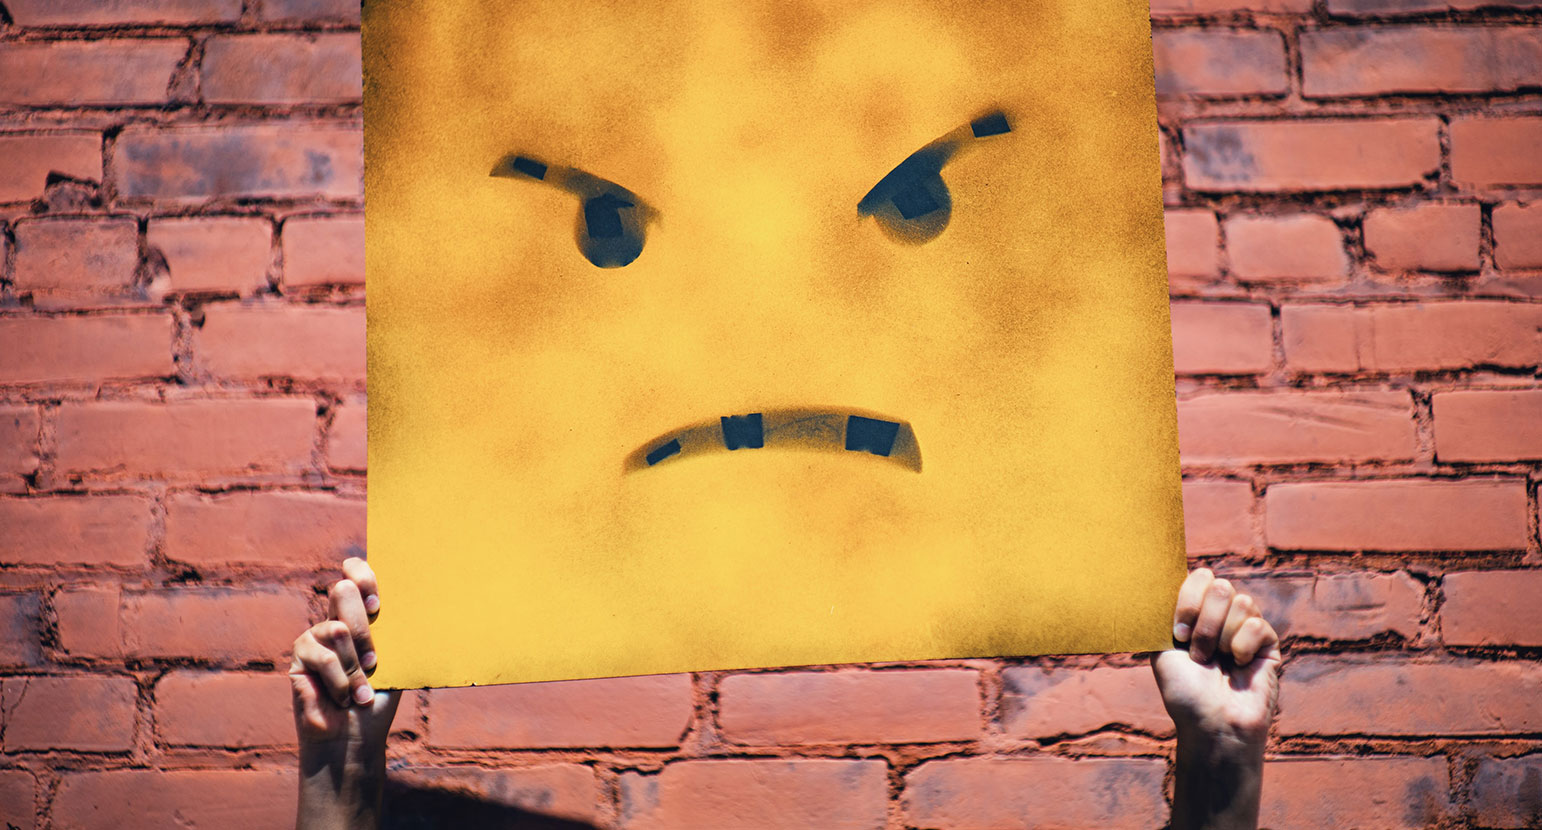 Angry Face for programmatic media buying